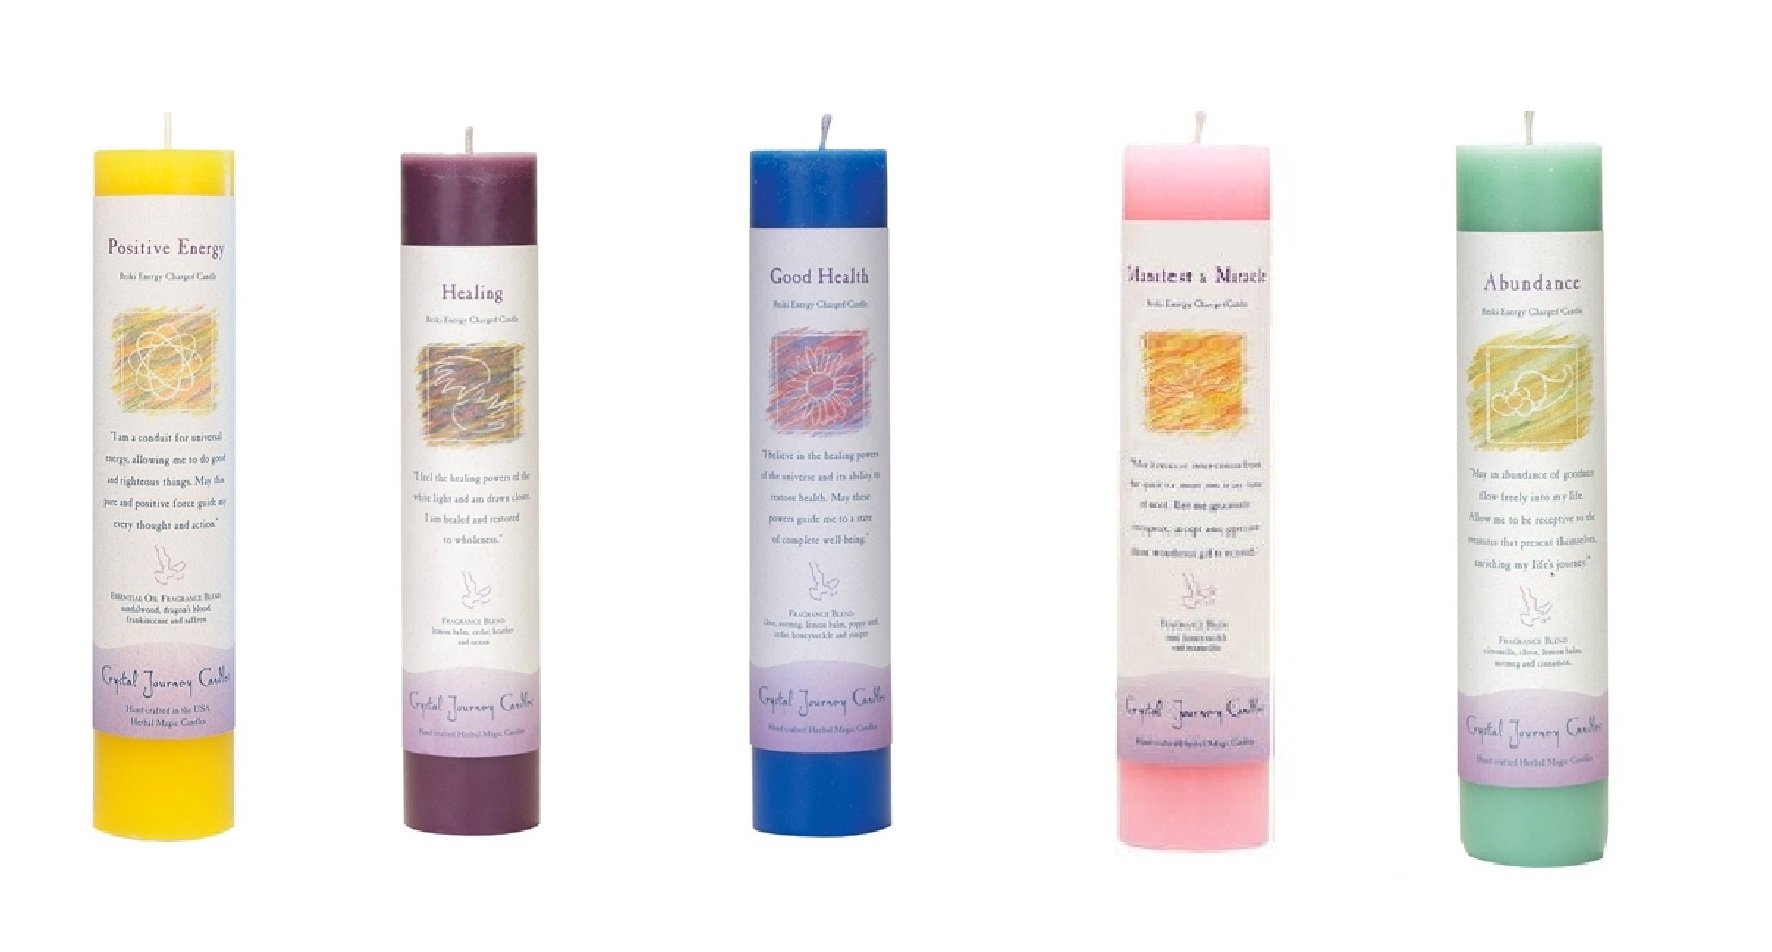 Crystal Journey Reiki Charged Herbal Magic Pillar Candle with Inspirational Labels - Set of 5 (Positive Energy, Healing, Good Health, Manifest a Miracle, Abundance) Each 7''x1.5'' handcrafted